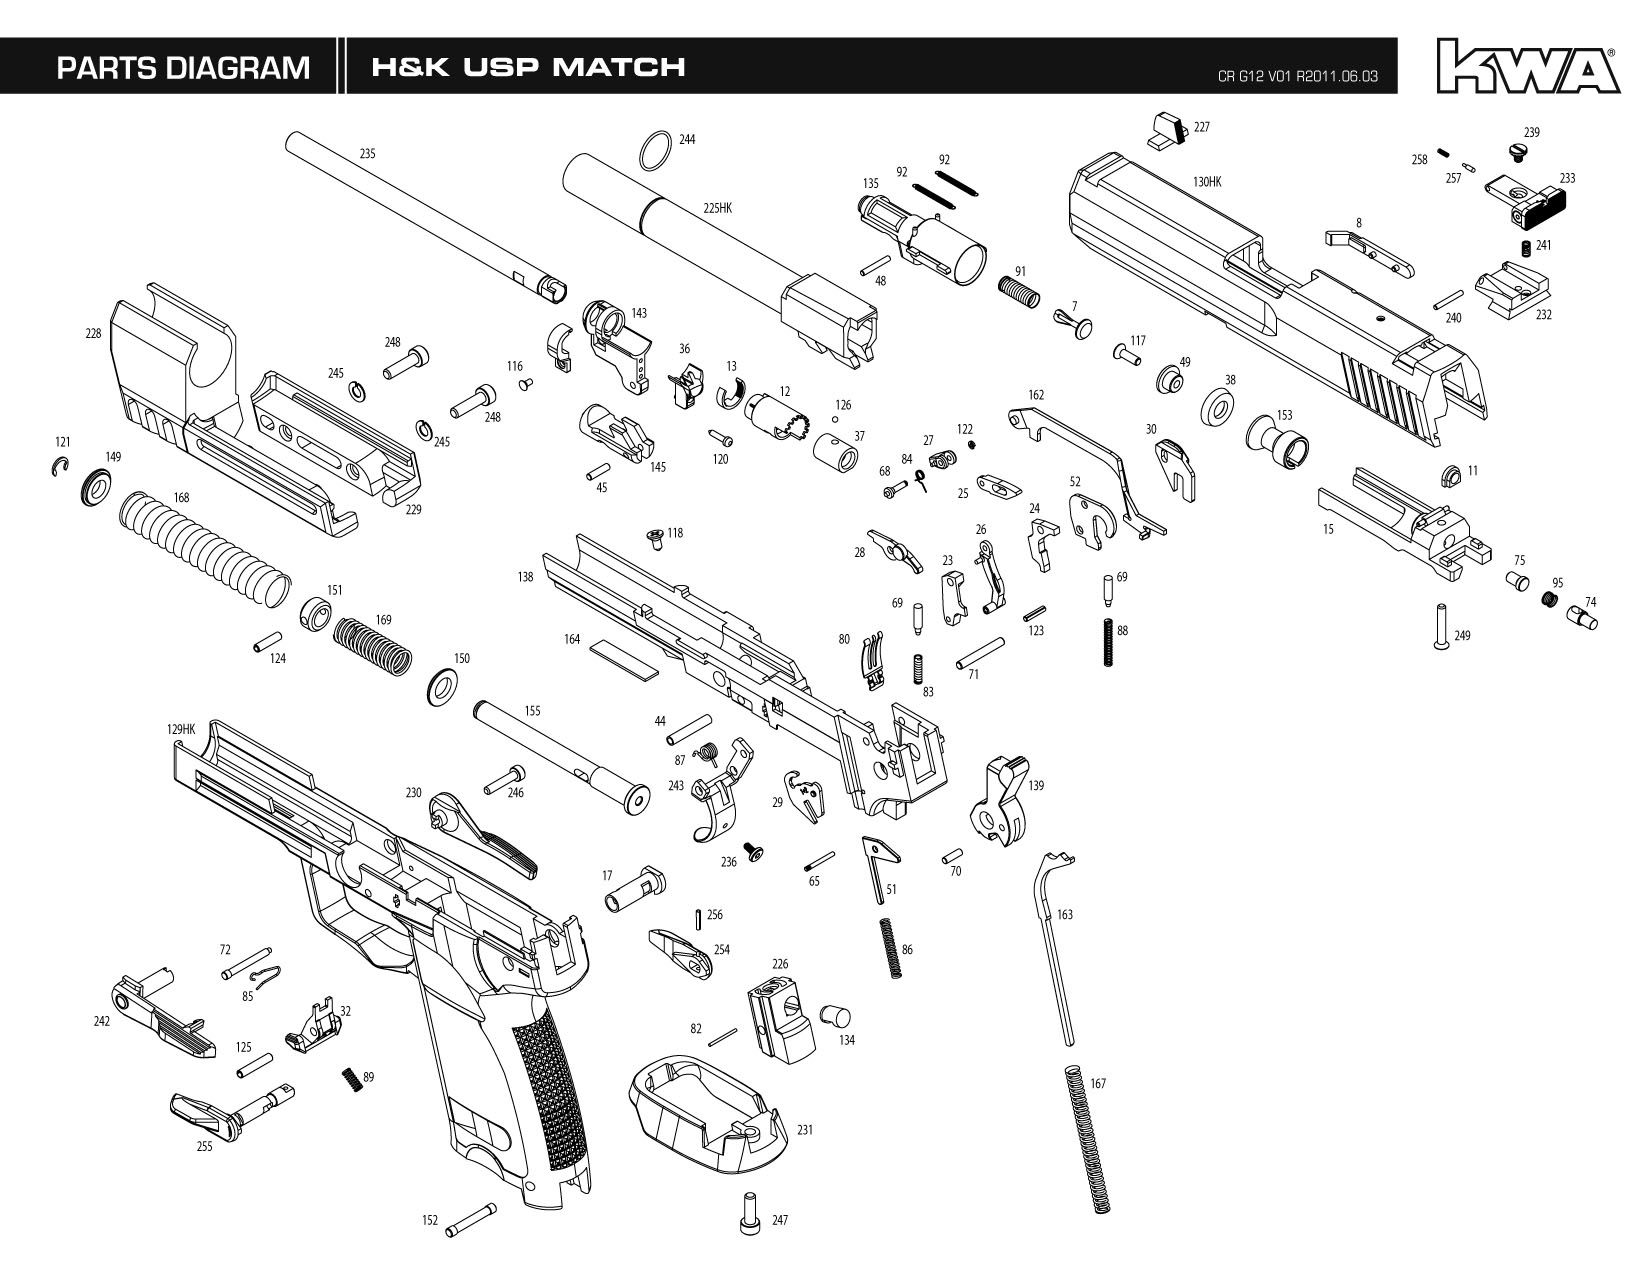 Exploded Gun Diagrams Hk Usp 45